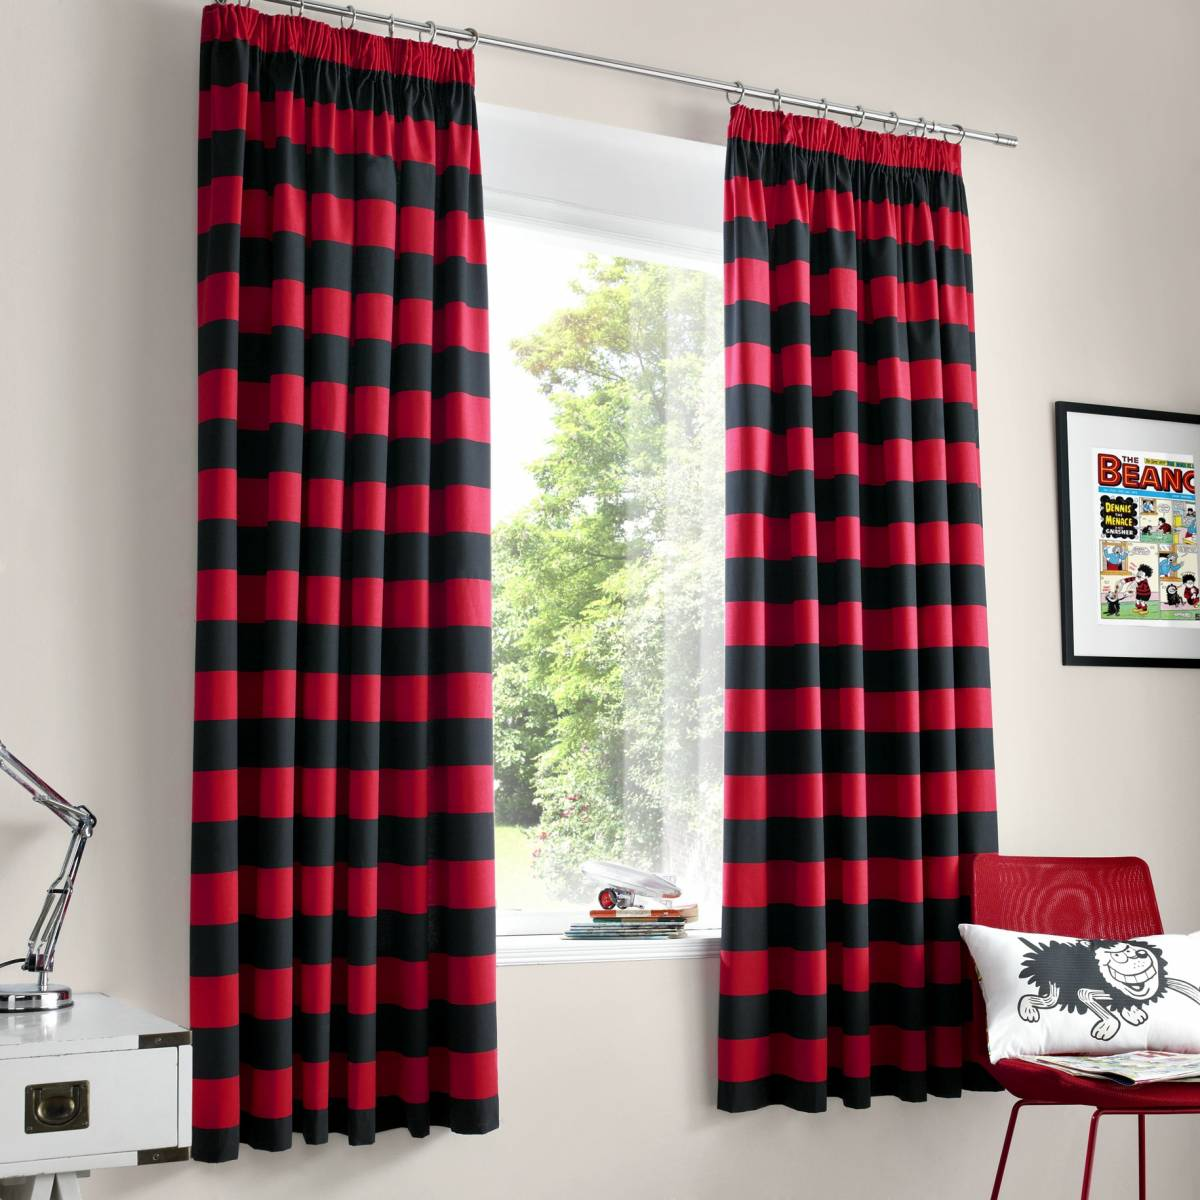 1361300748-45781600 20 Hottest Curtain Designs for 2017